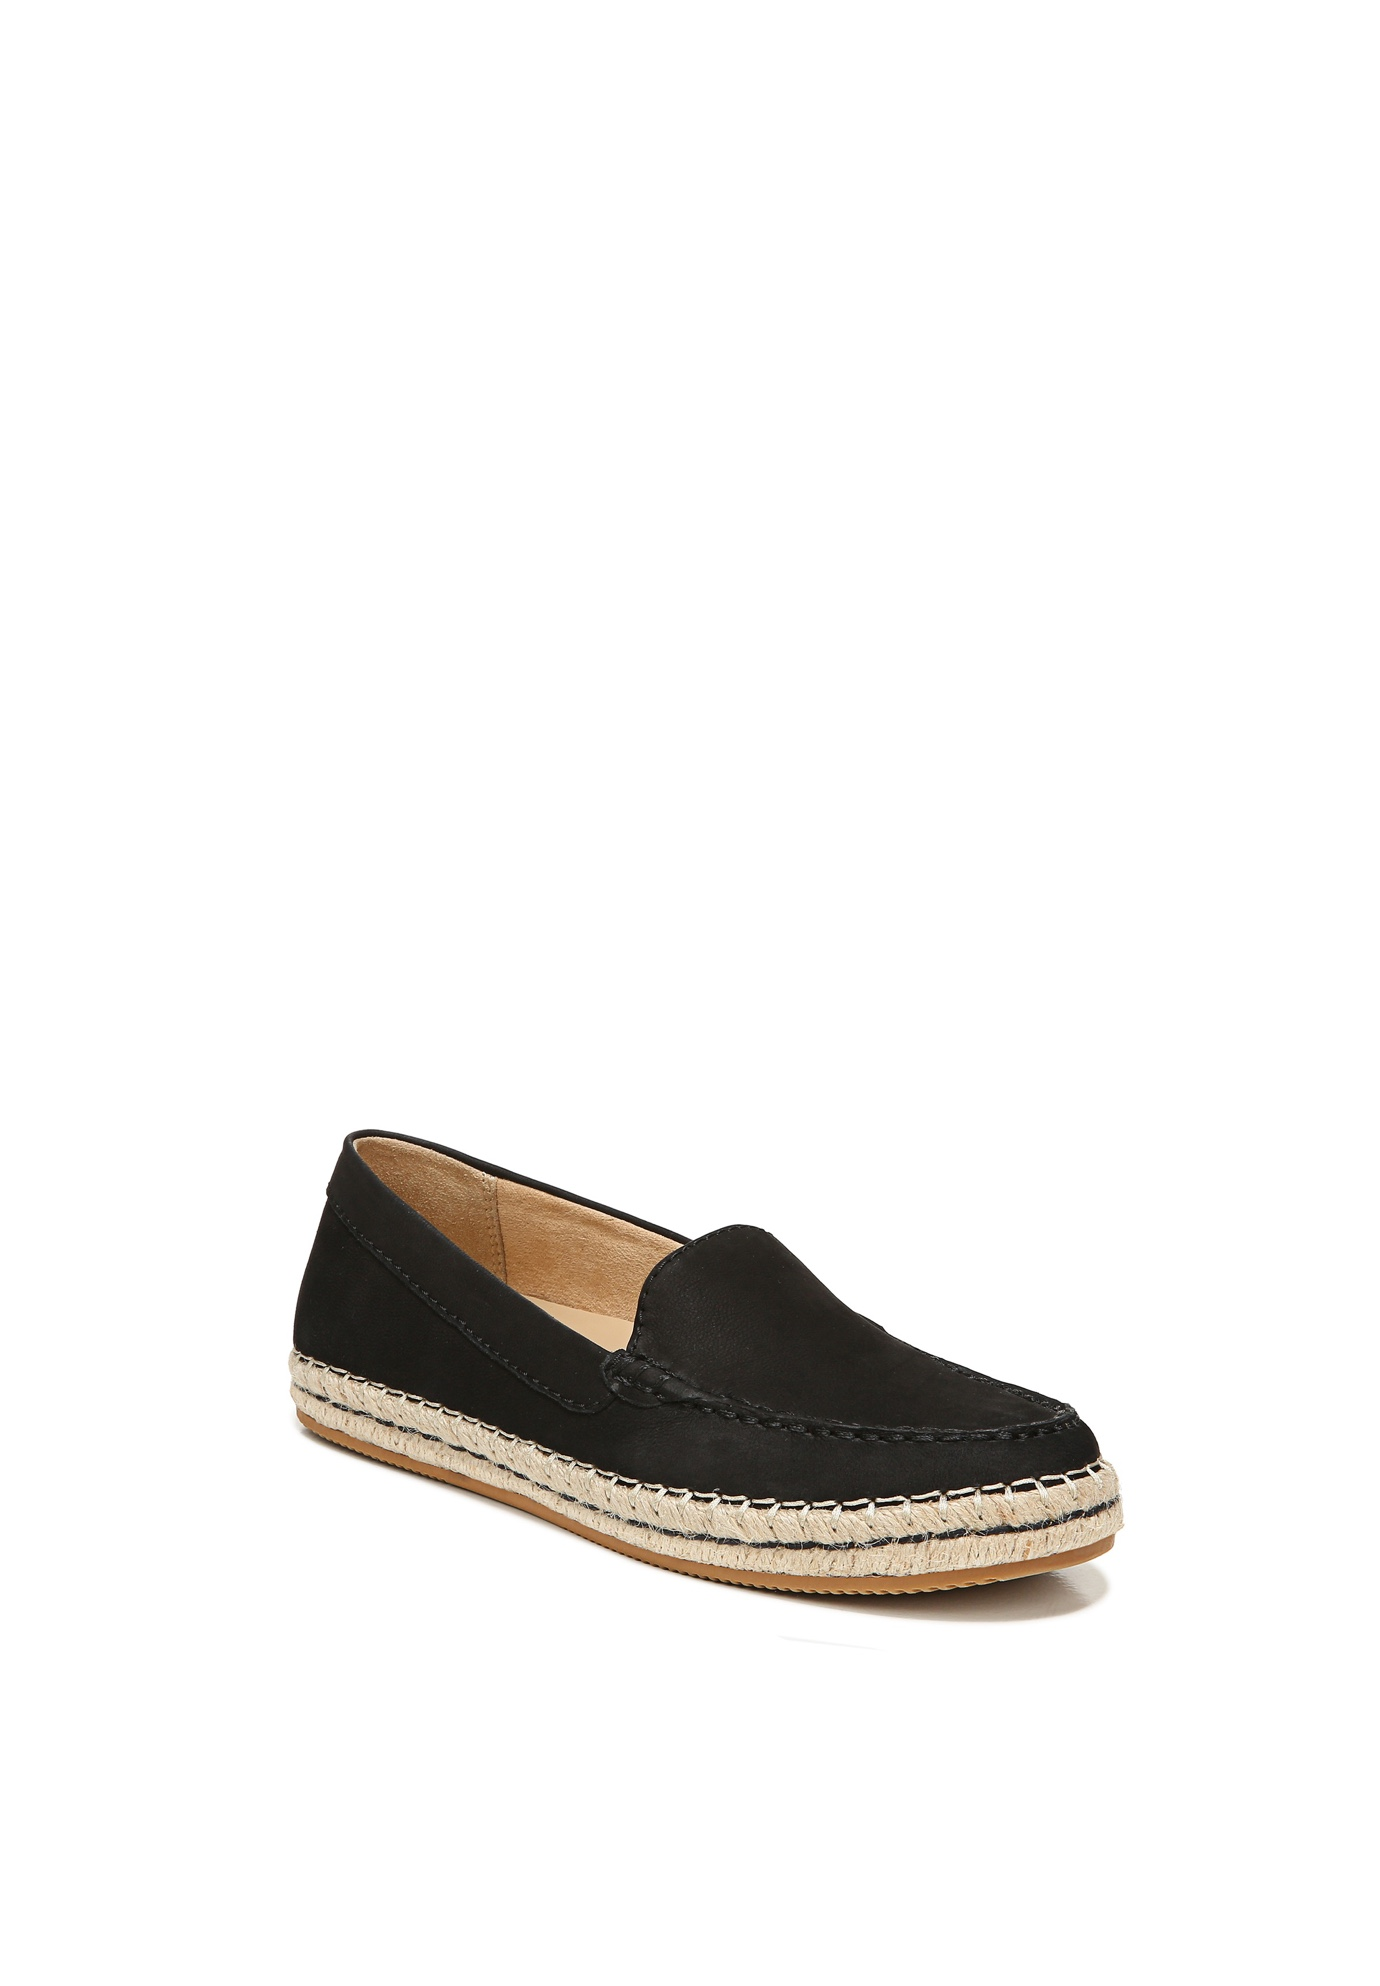 Alexa Flat Espadrille by Naturalizer,